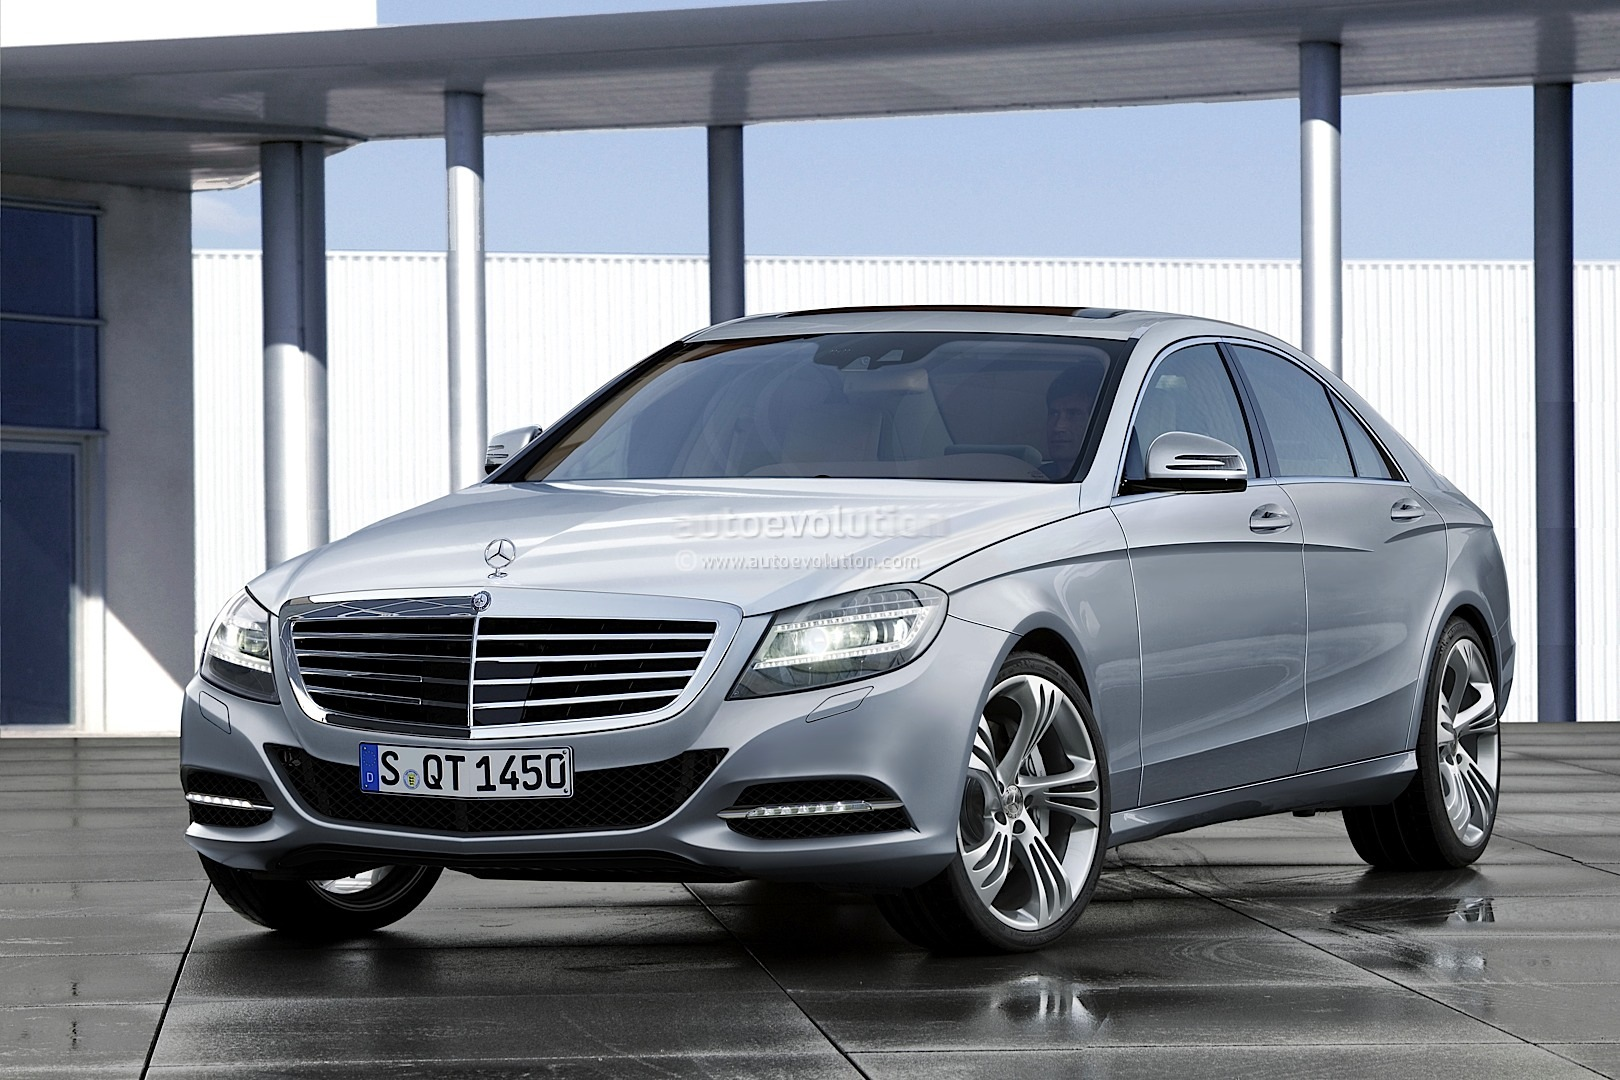 2013 mercedes s class rendering released autoevolution for 2013 mercedes benz s class s550